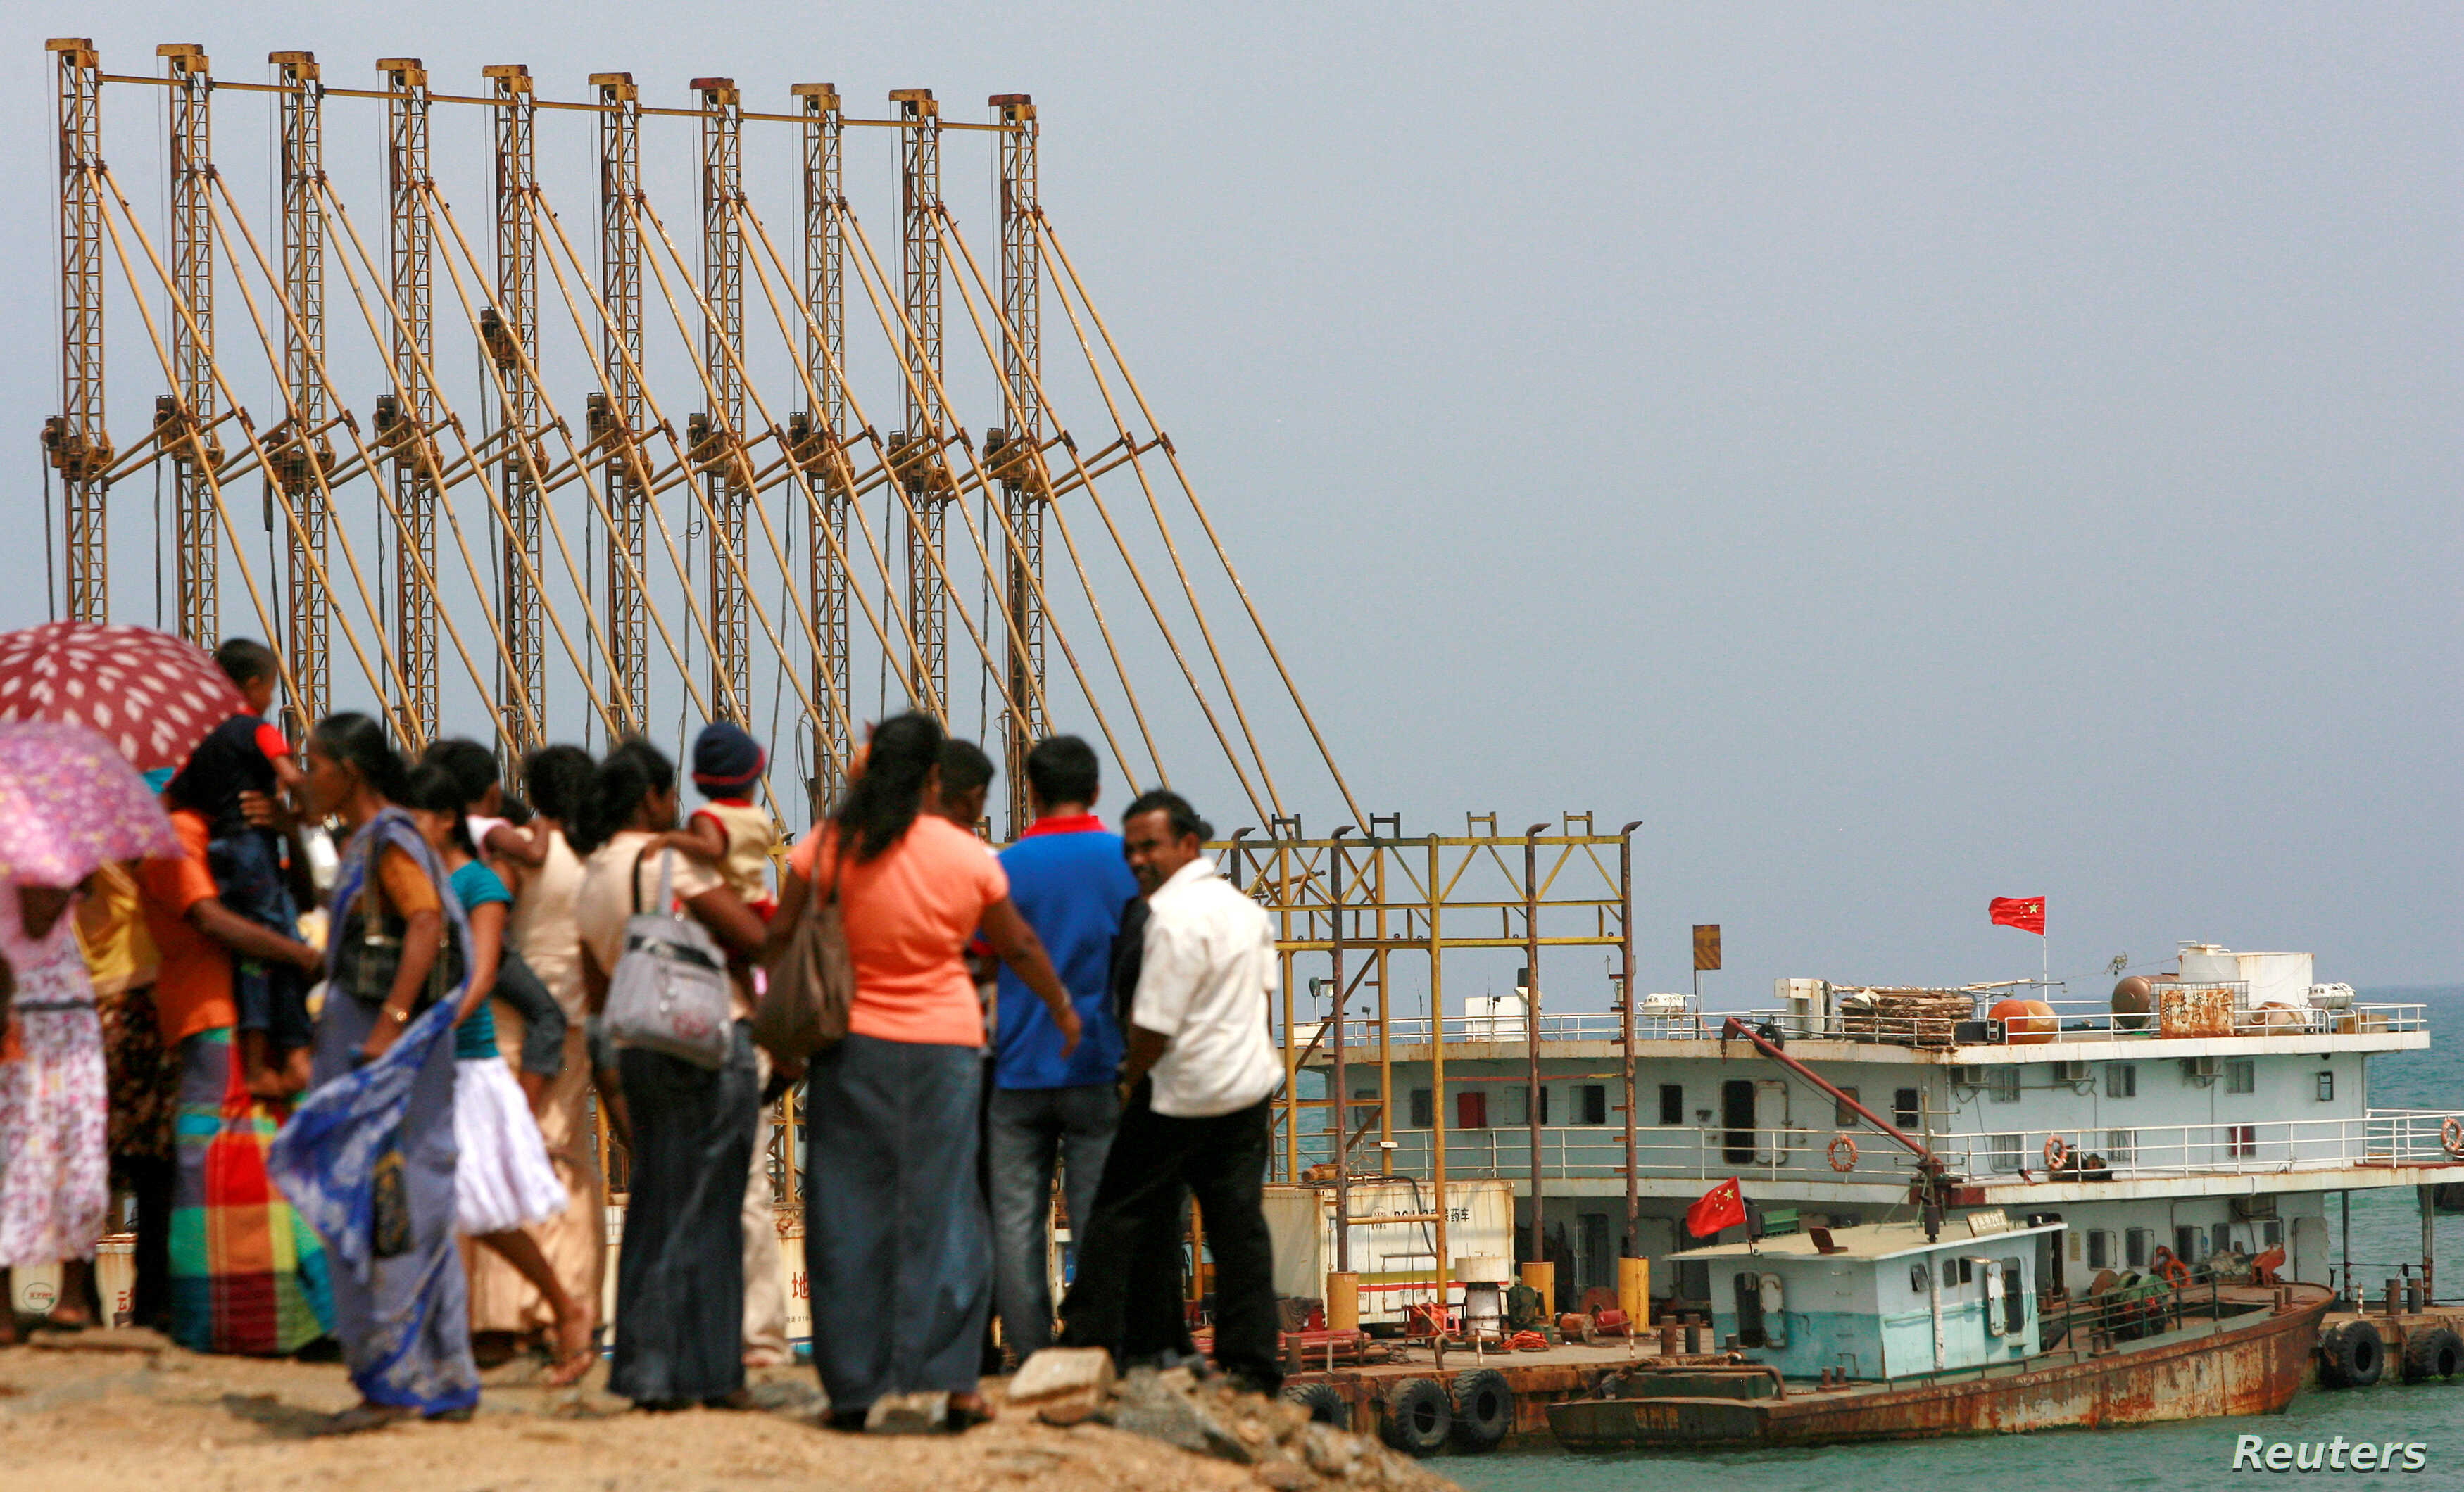 A group of Sri Lankan visitors at the new deep water shipping port watch a Chinese dredging ships work in Hambantota, March 24, 2010.